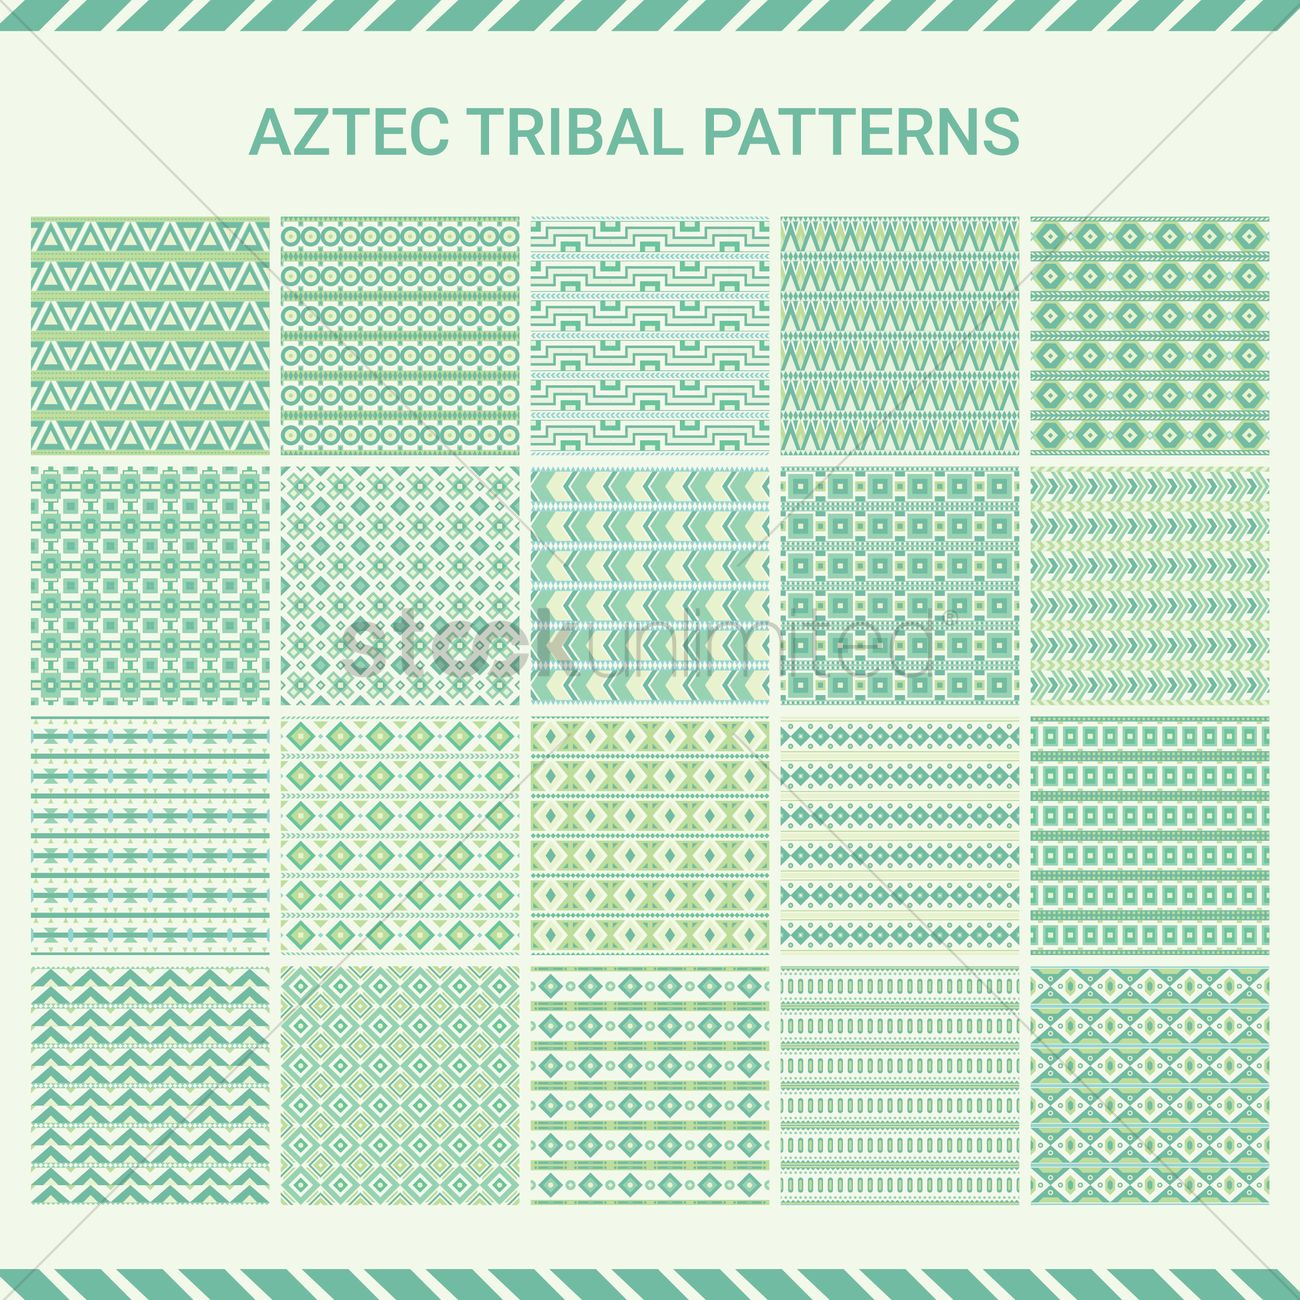 Collection of aztec tribal pattern Vector Image - 1805774